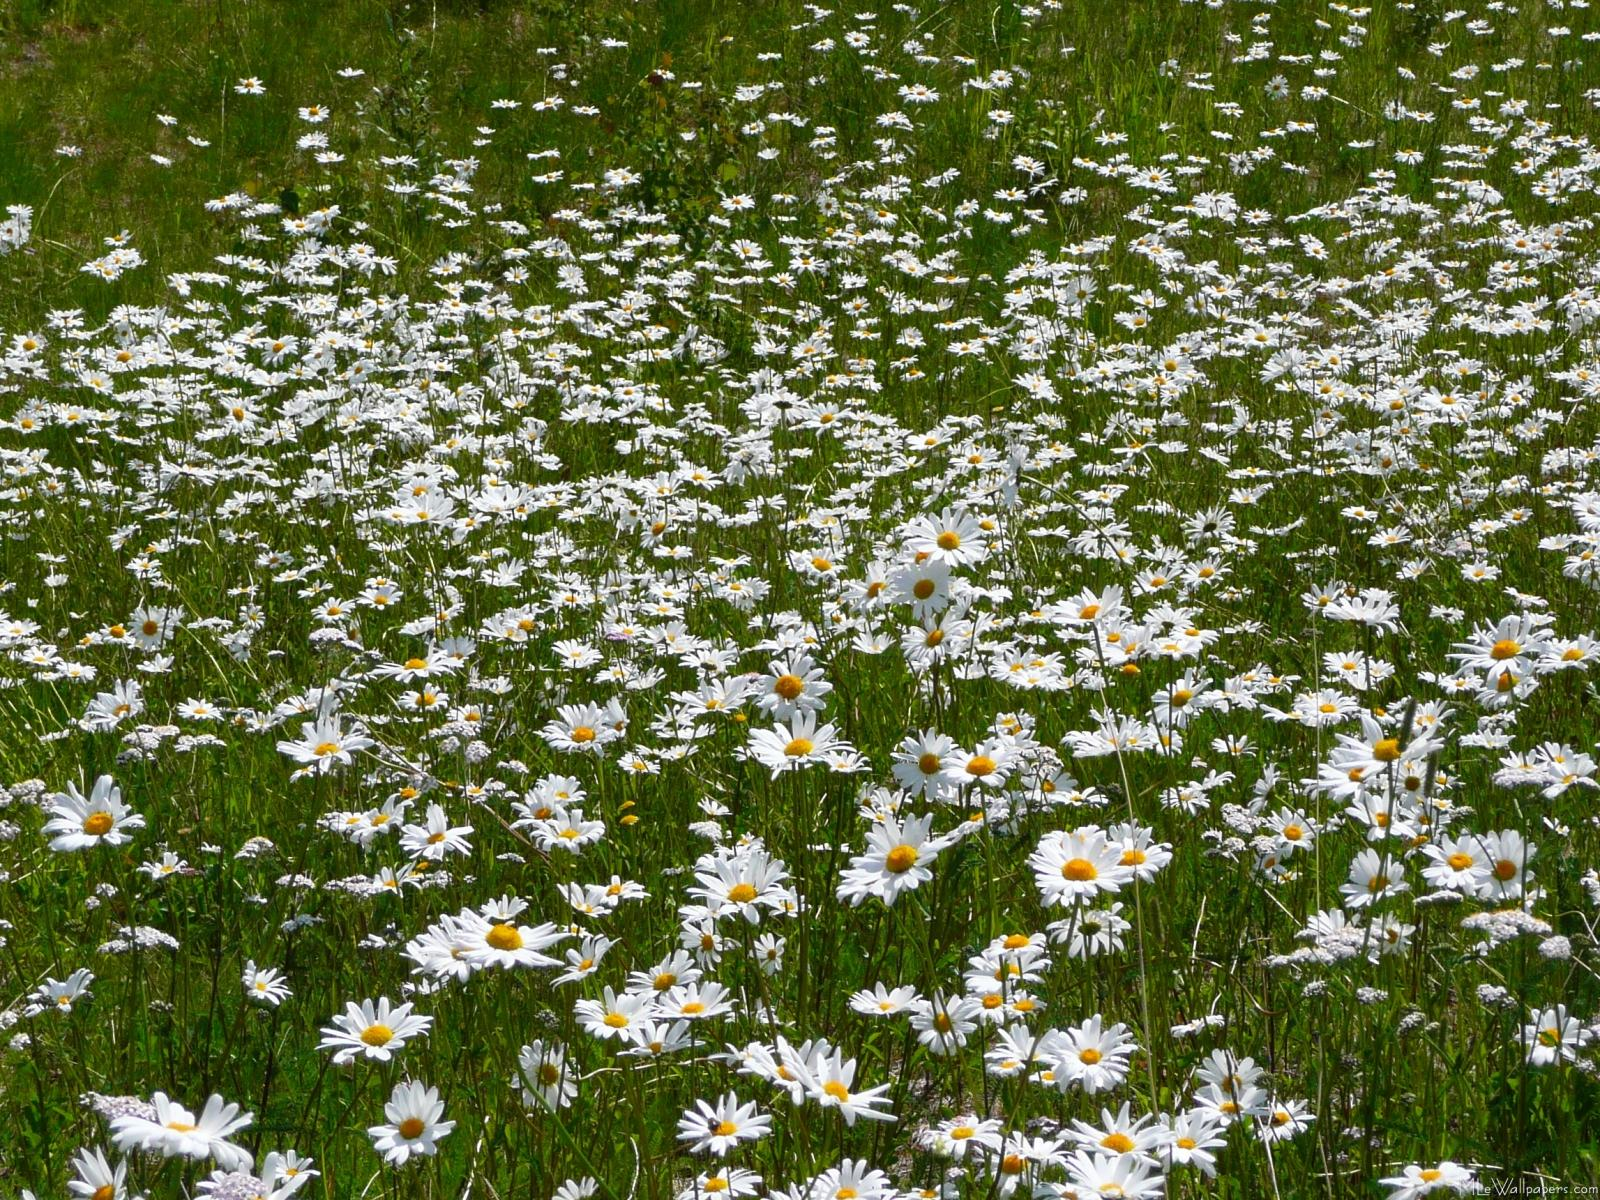 mlewallpaperscom field of daisies